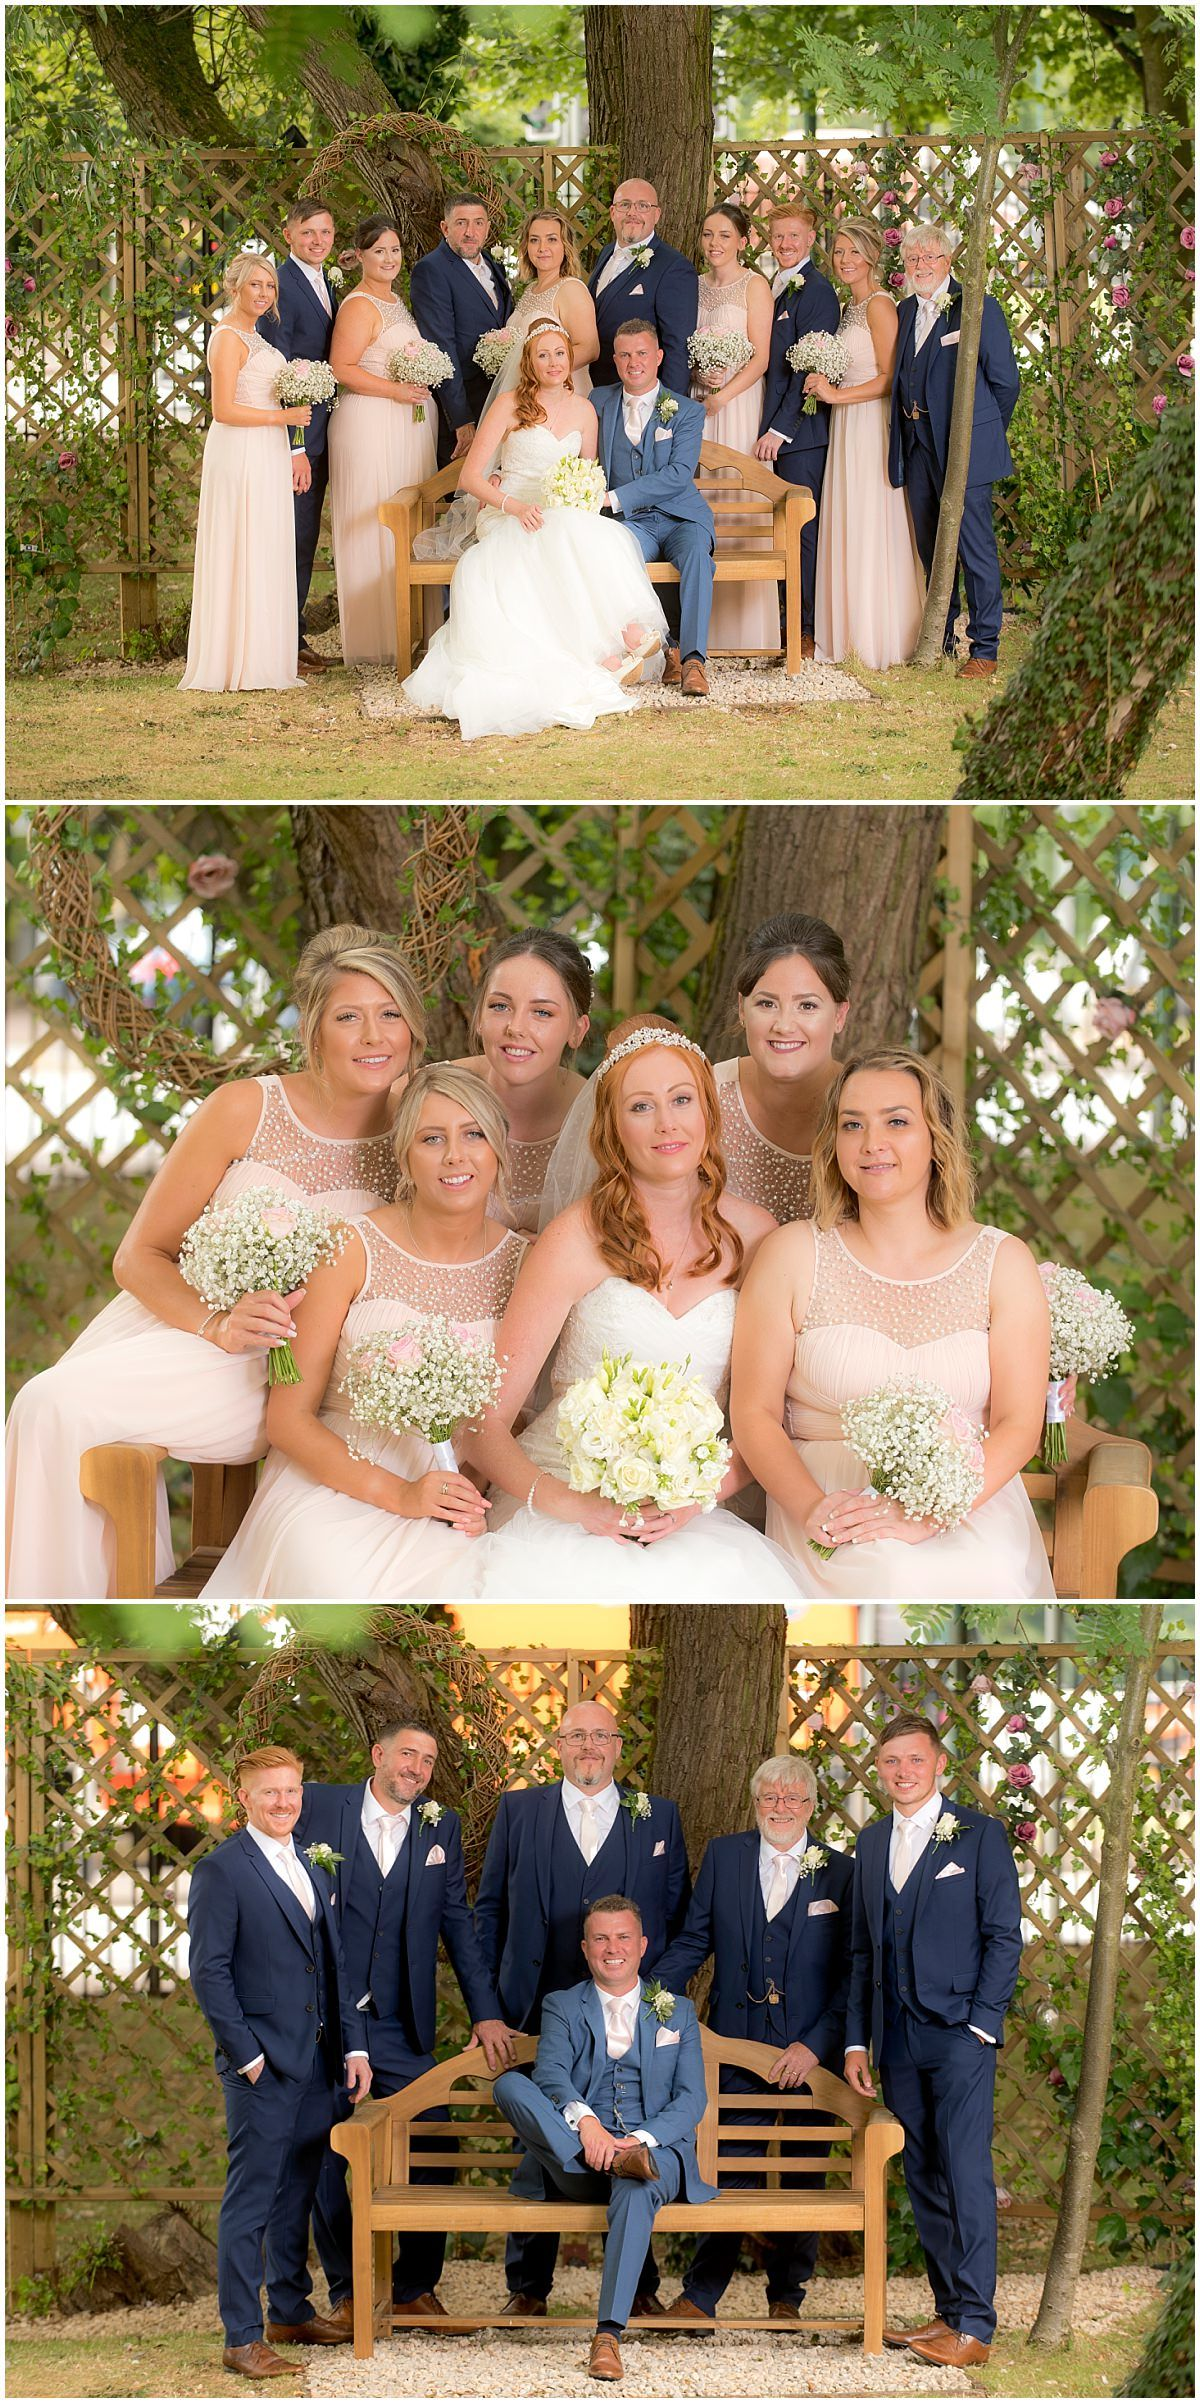 Bridesmaids portraits